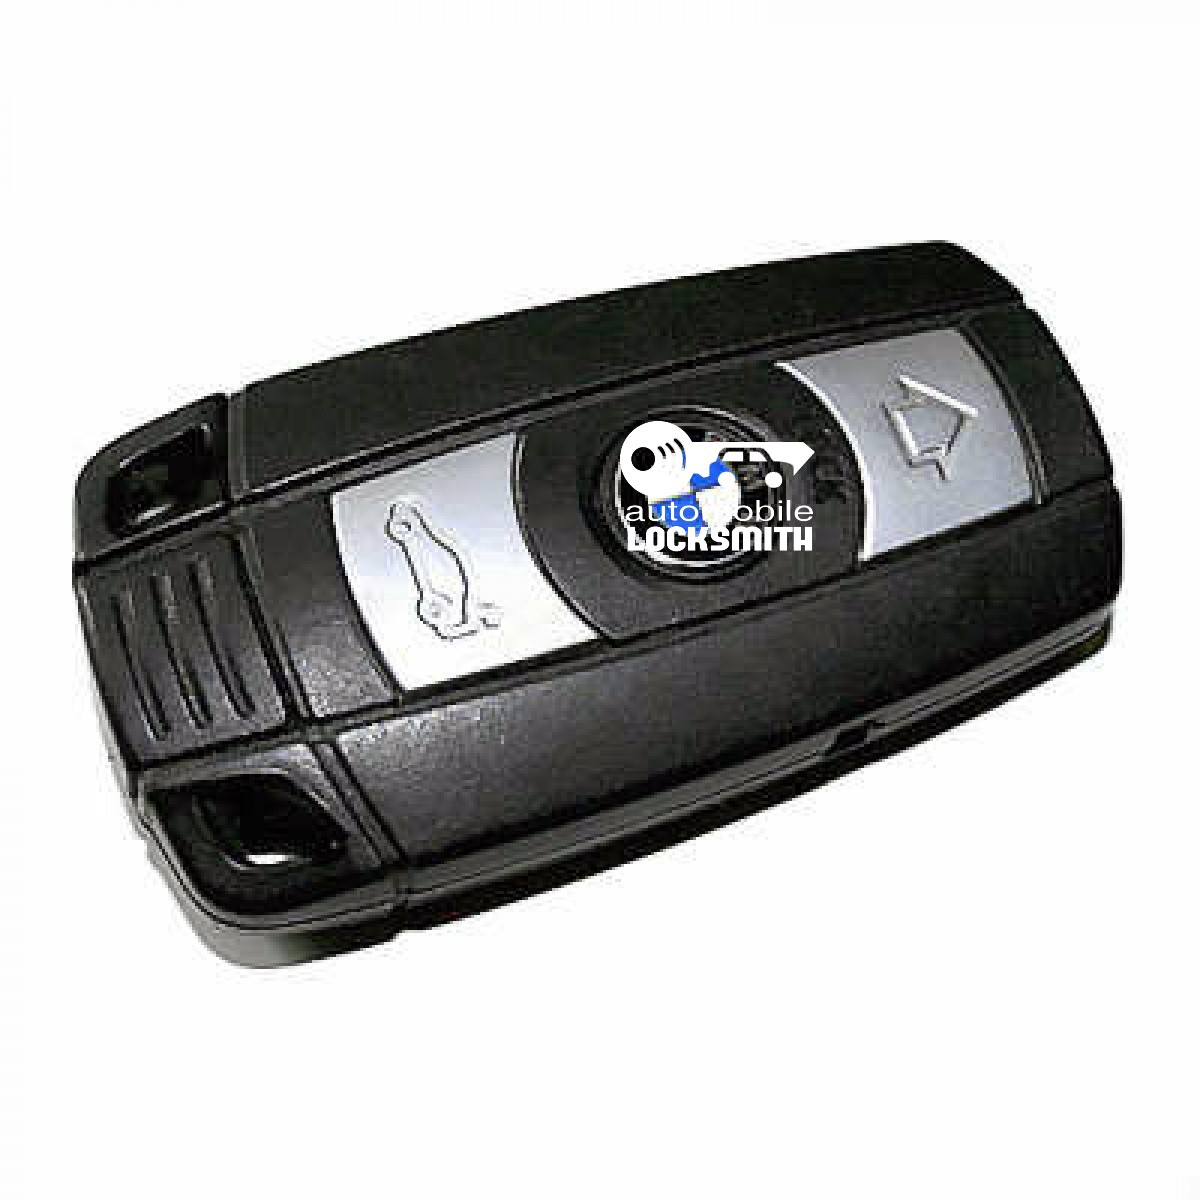 Used BMW 3 button remote smart key fob 6986585-03 868Mhz